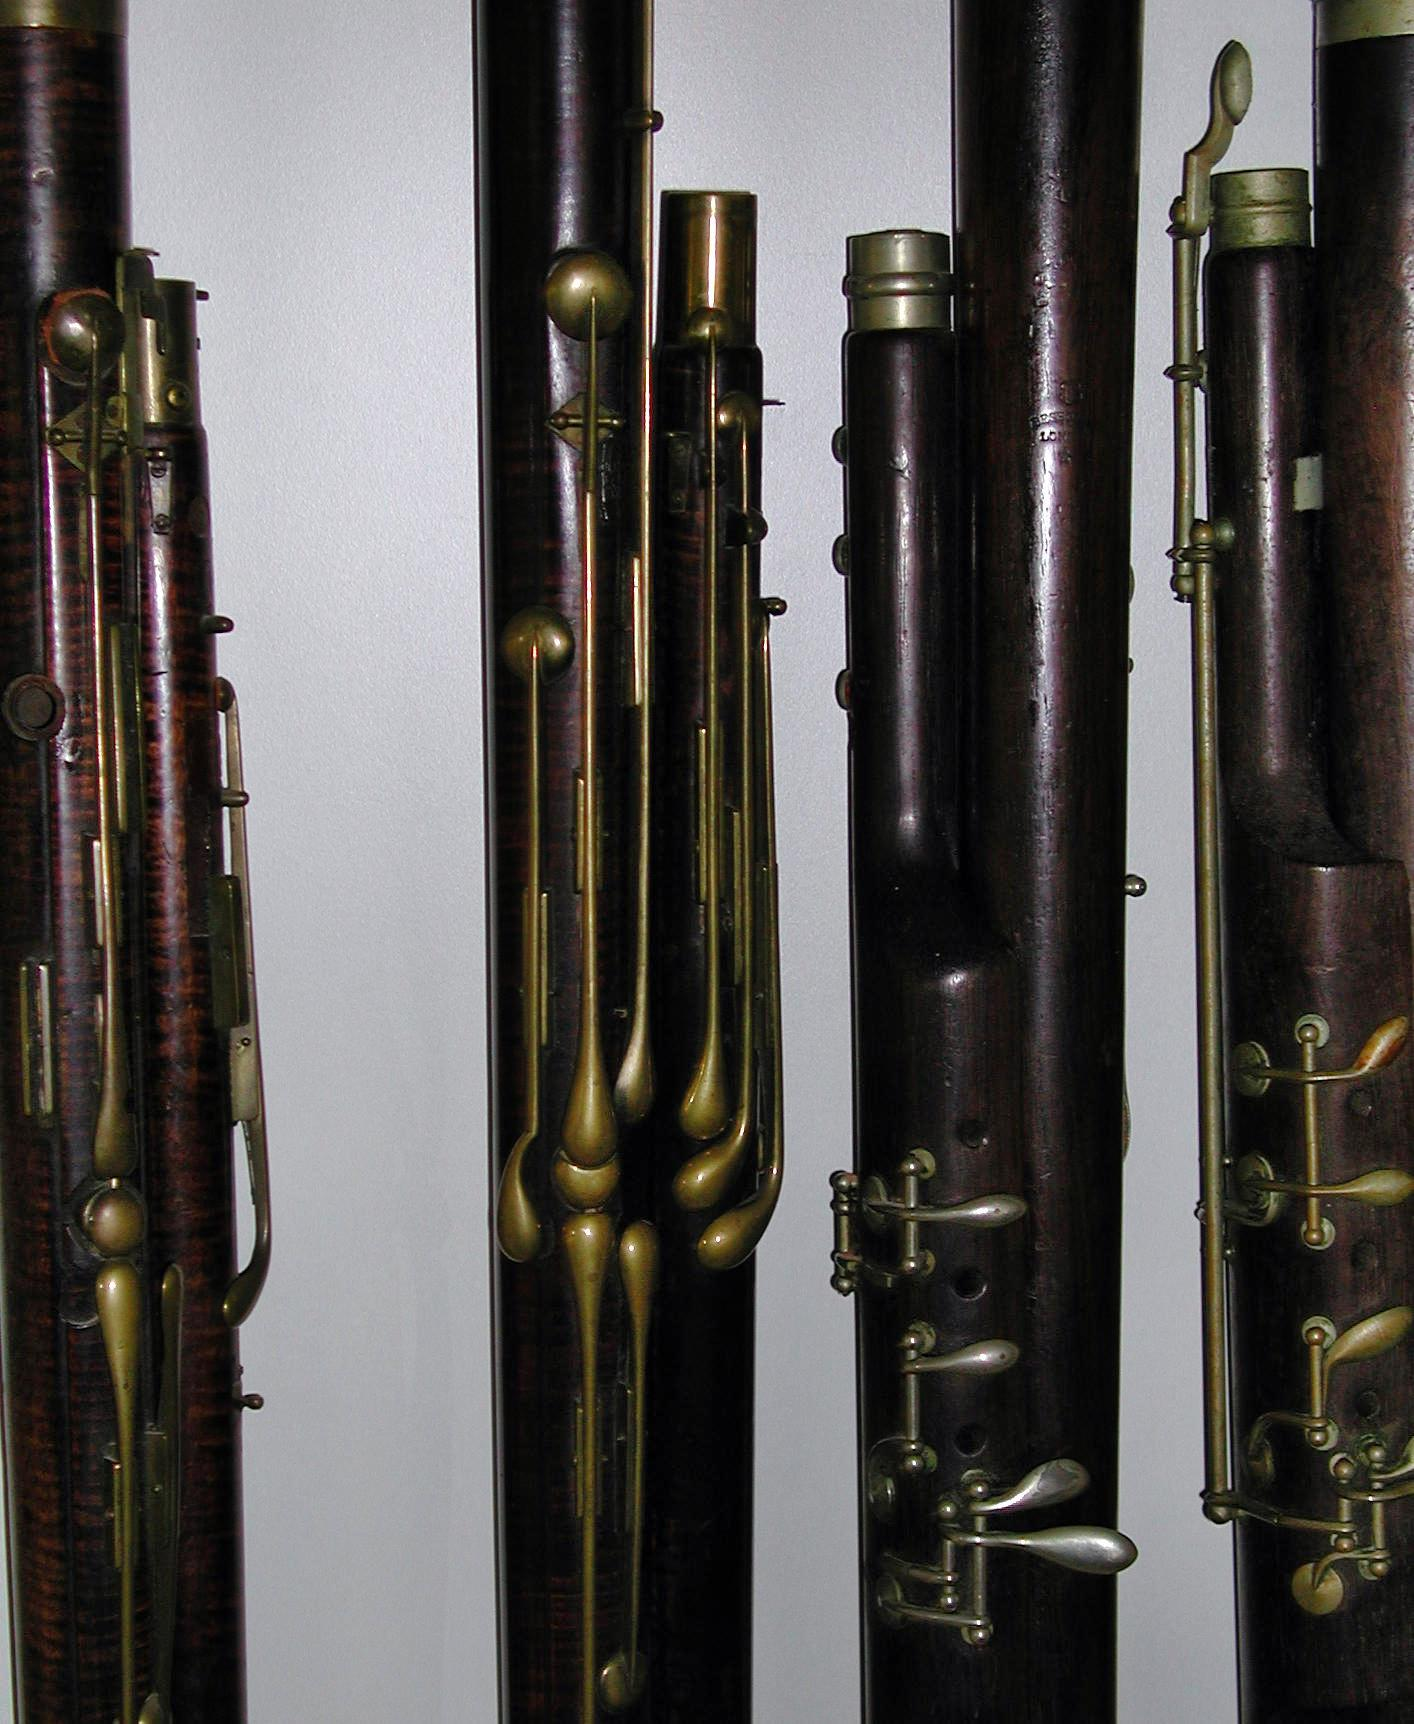 French-bassoons-middle.jpeg